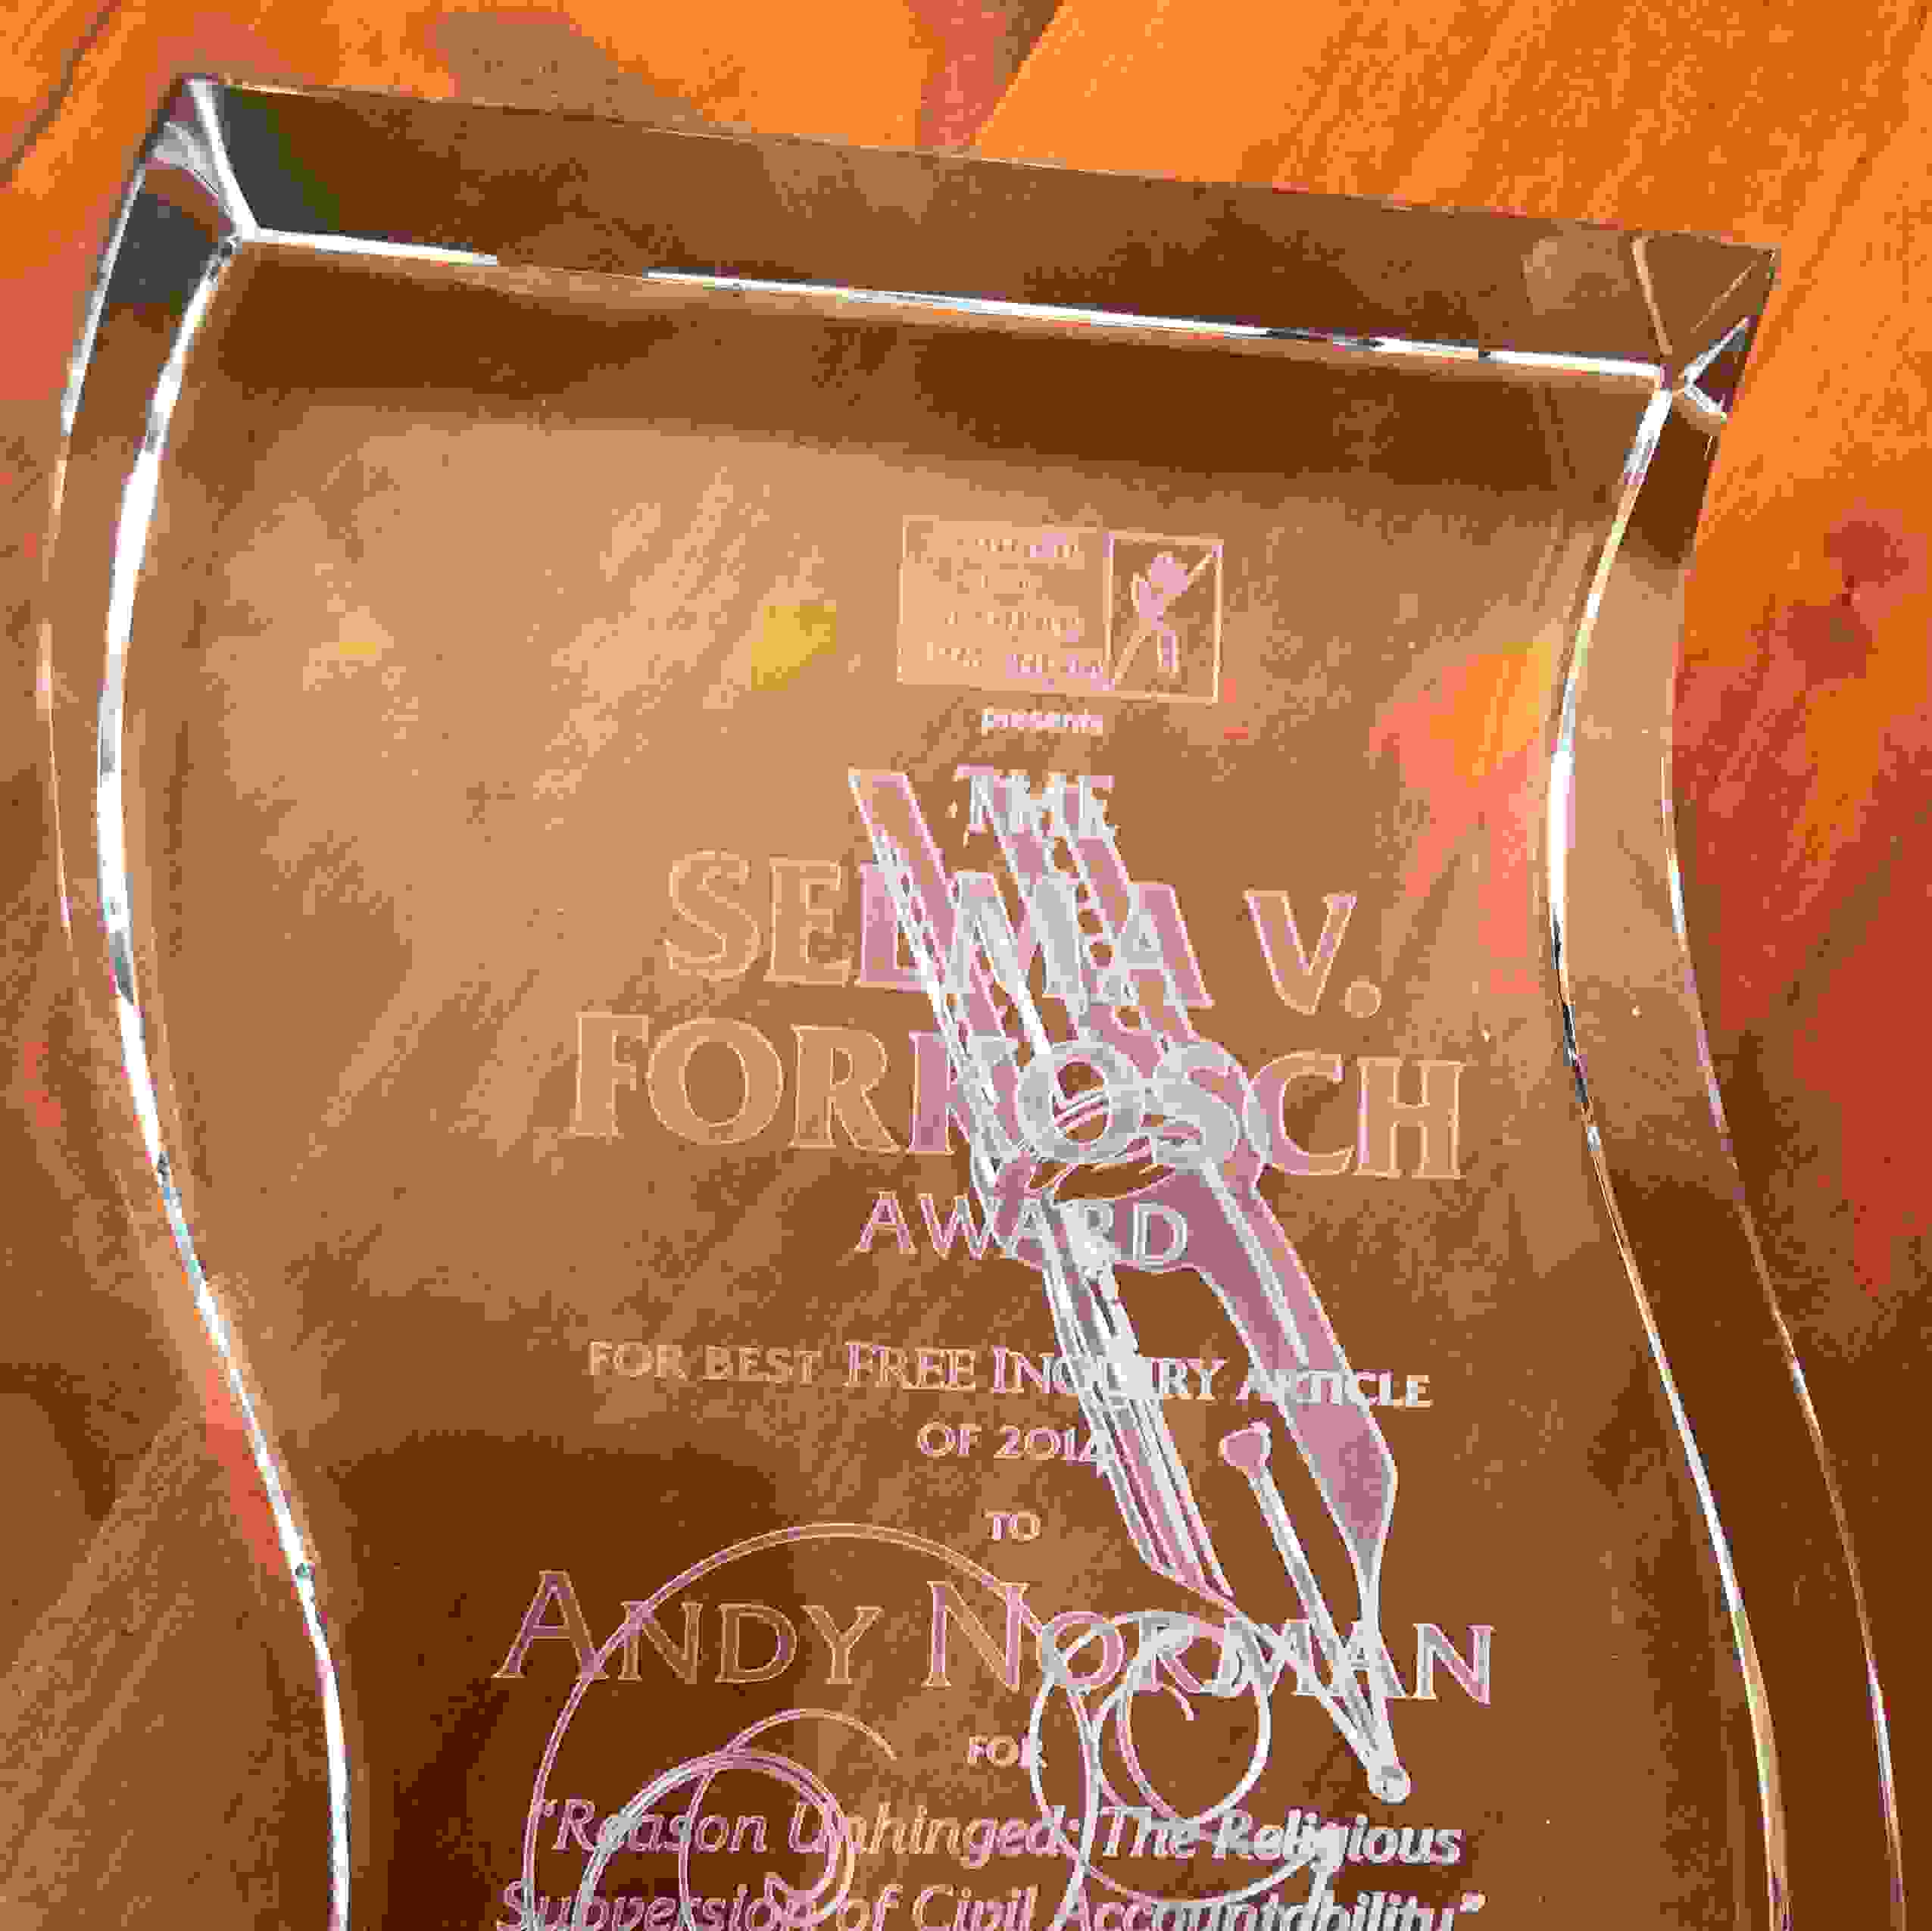 Image of the Selma V. Forkosch Award for Best Free Inquiry Article, awarded to Andy Norman.